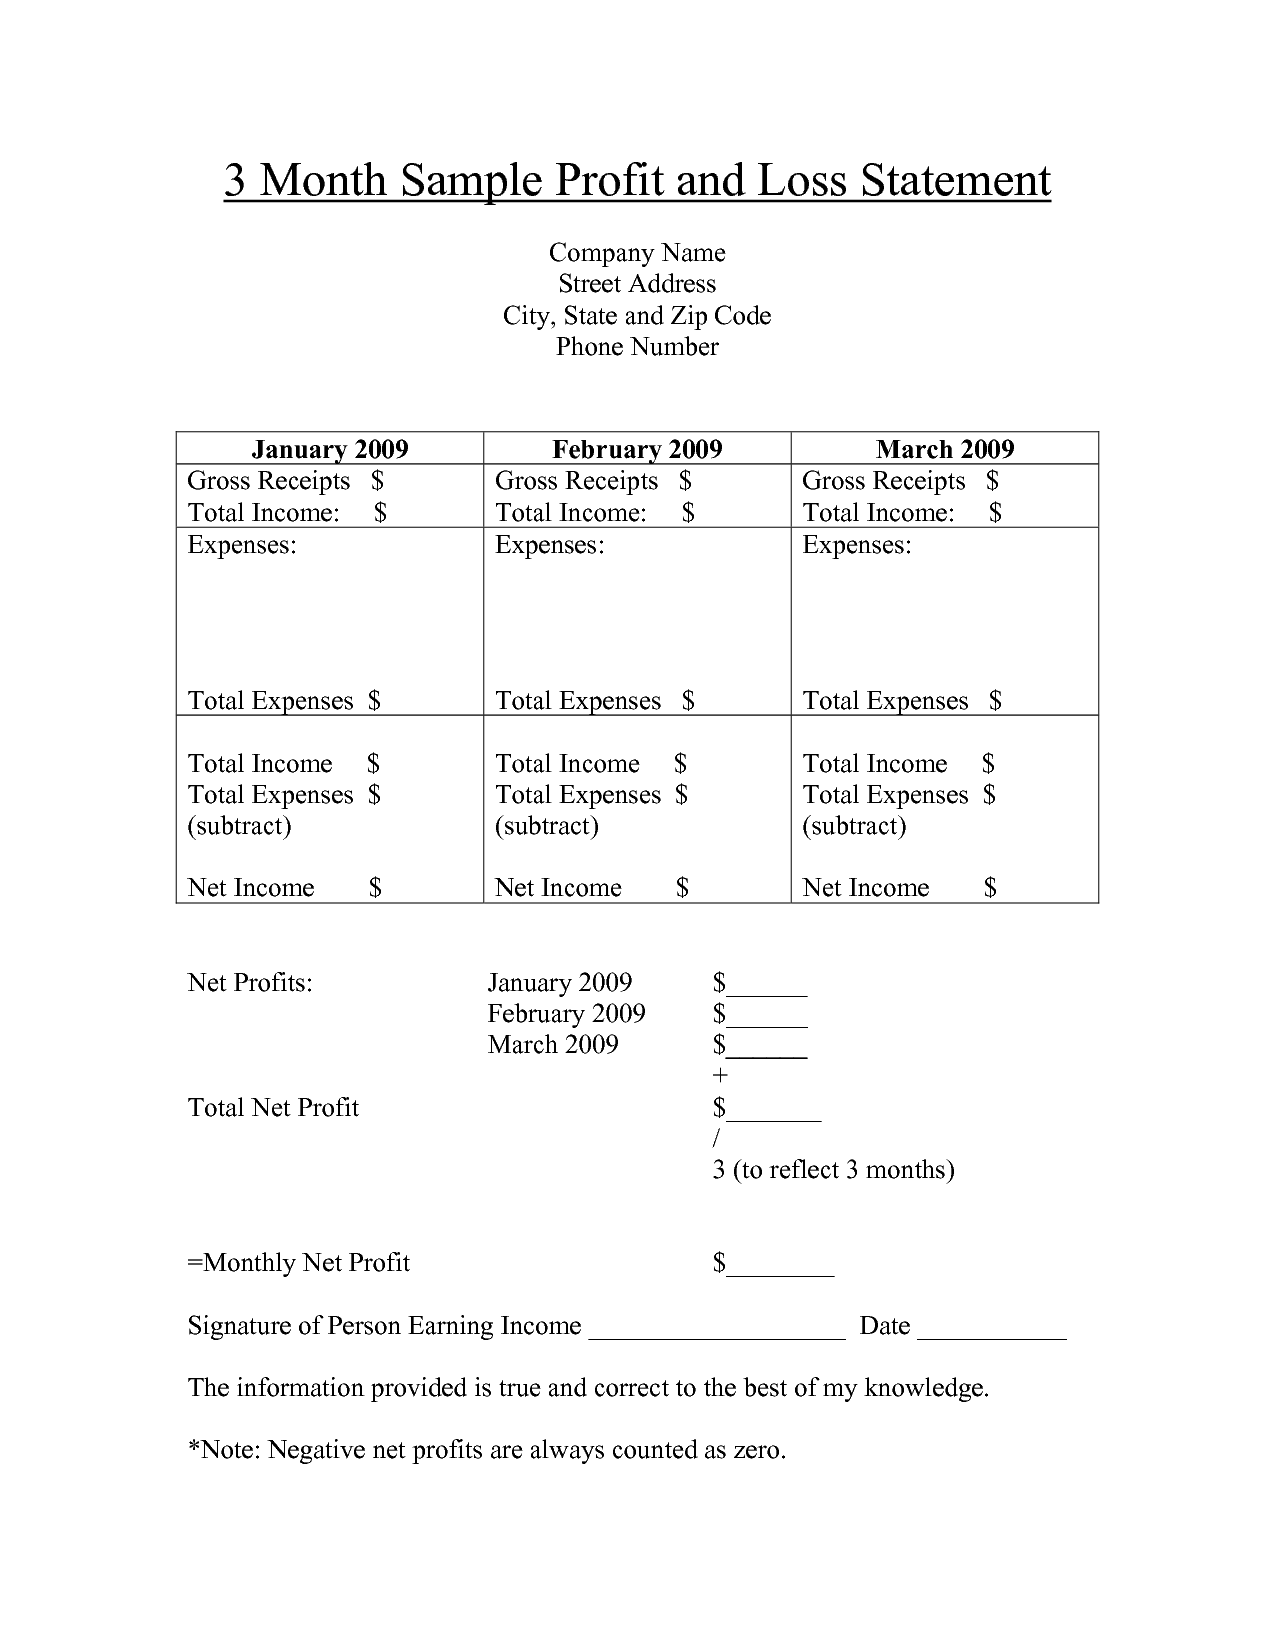 Free Printable Profit And Loss Statement Form For Home Care   Bing Images  Loss And Profit Statement Form